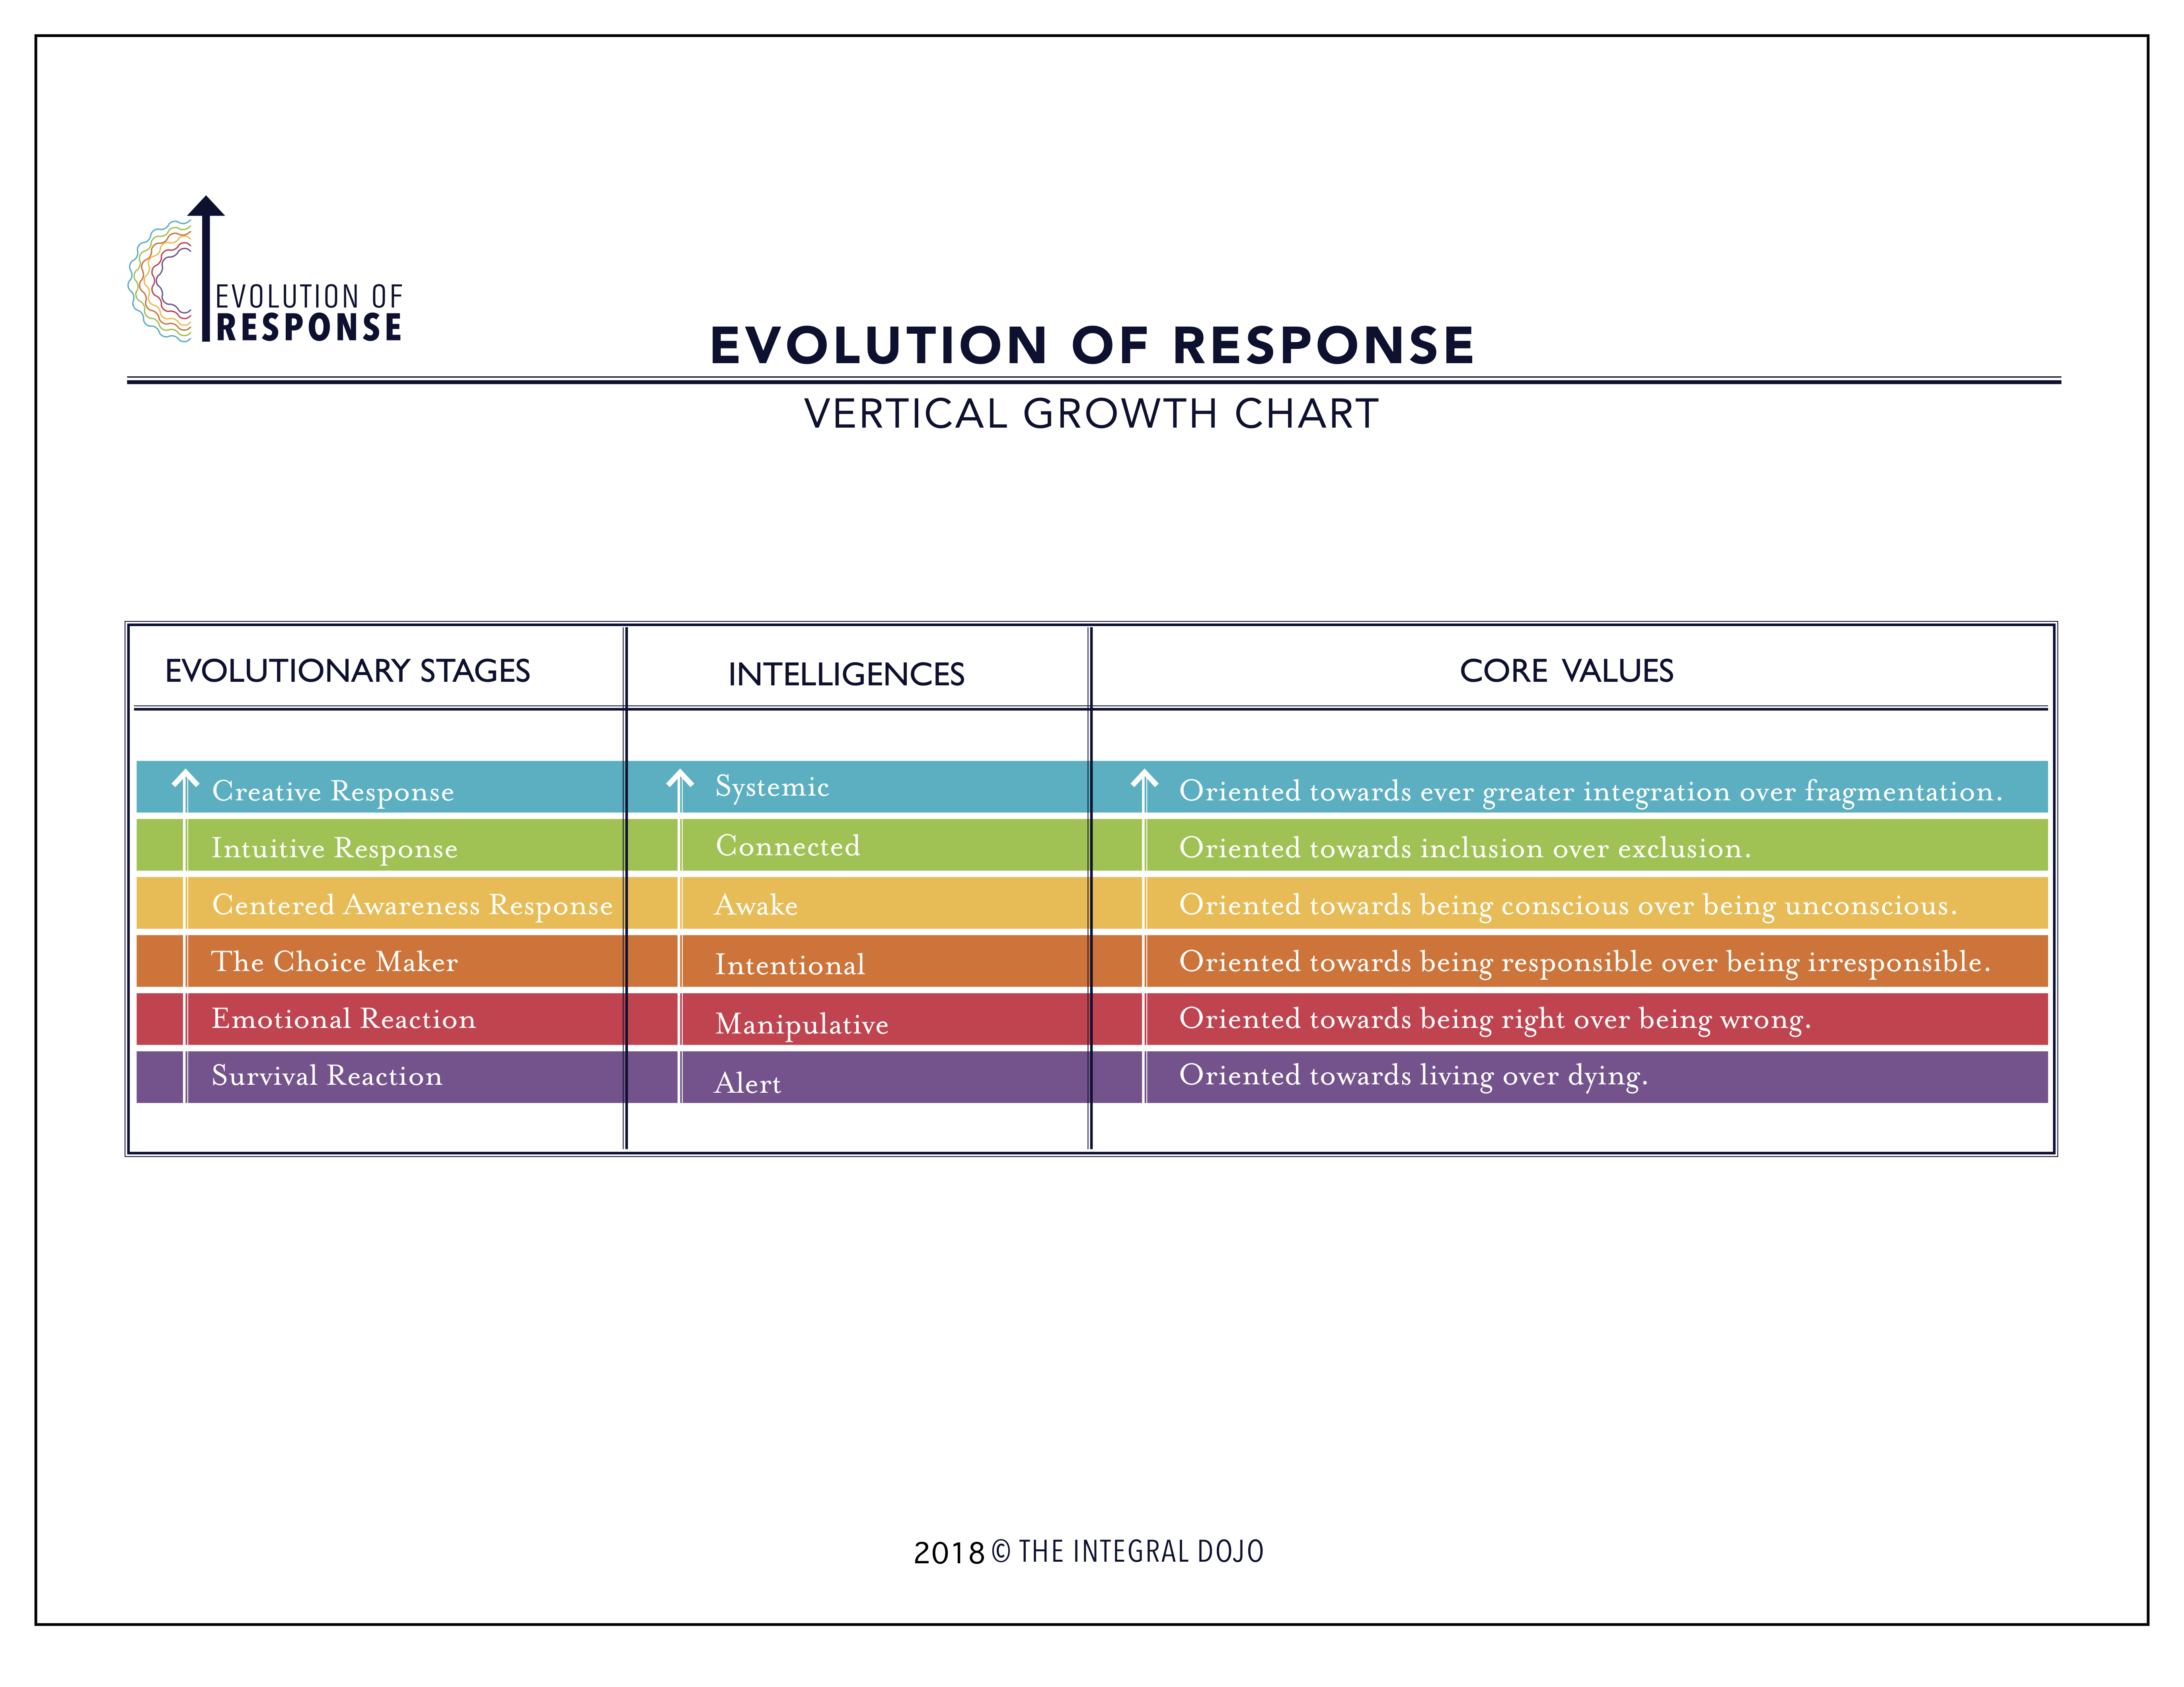 Evolution Of Response-Vertical Growth Chart